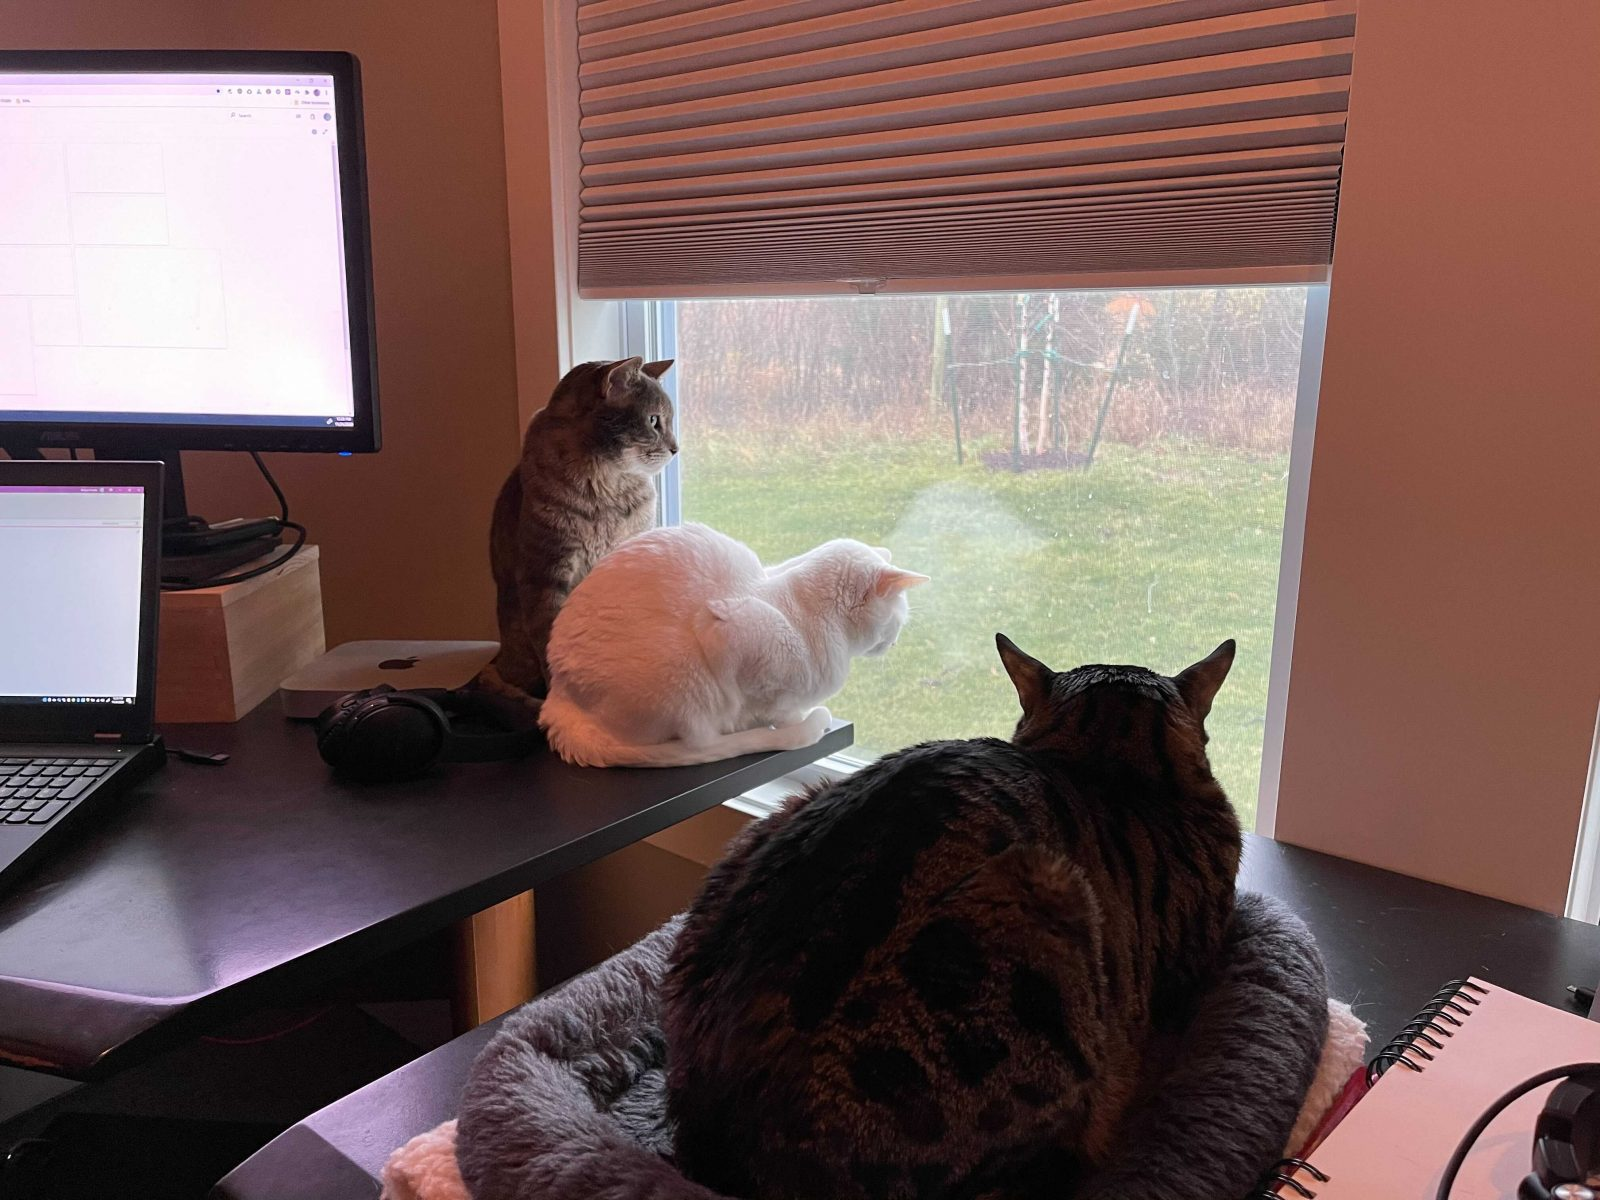 Three cats (one white, two tabby) look out of a window from their various perches.